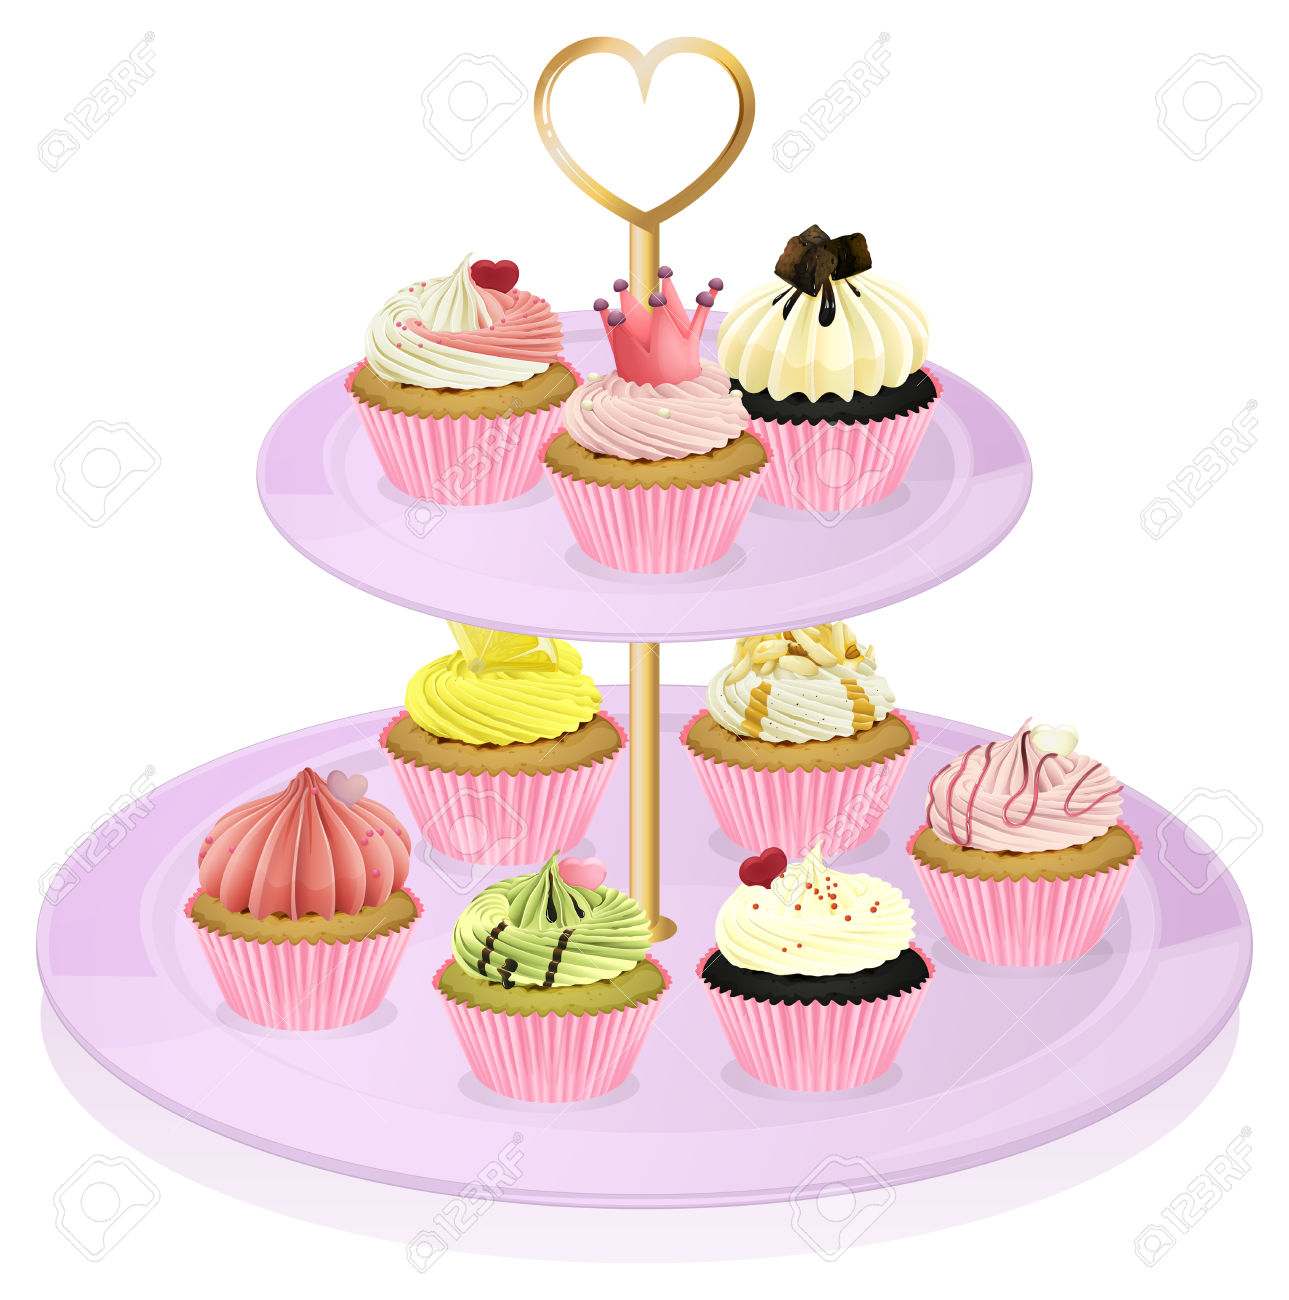 Illustration Of A Cupcake Stand With Cupcakes On A White.